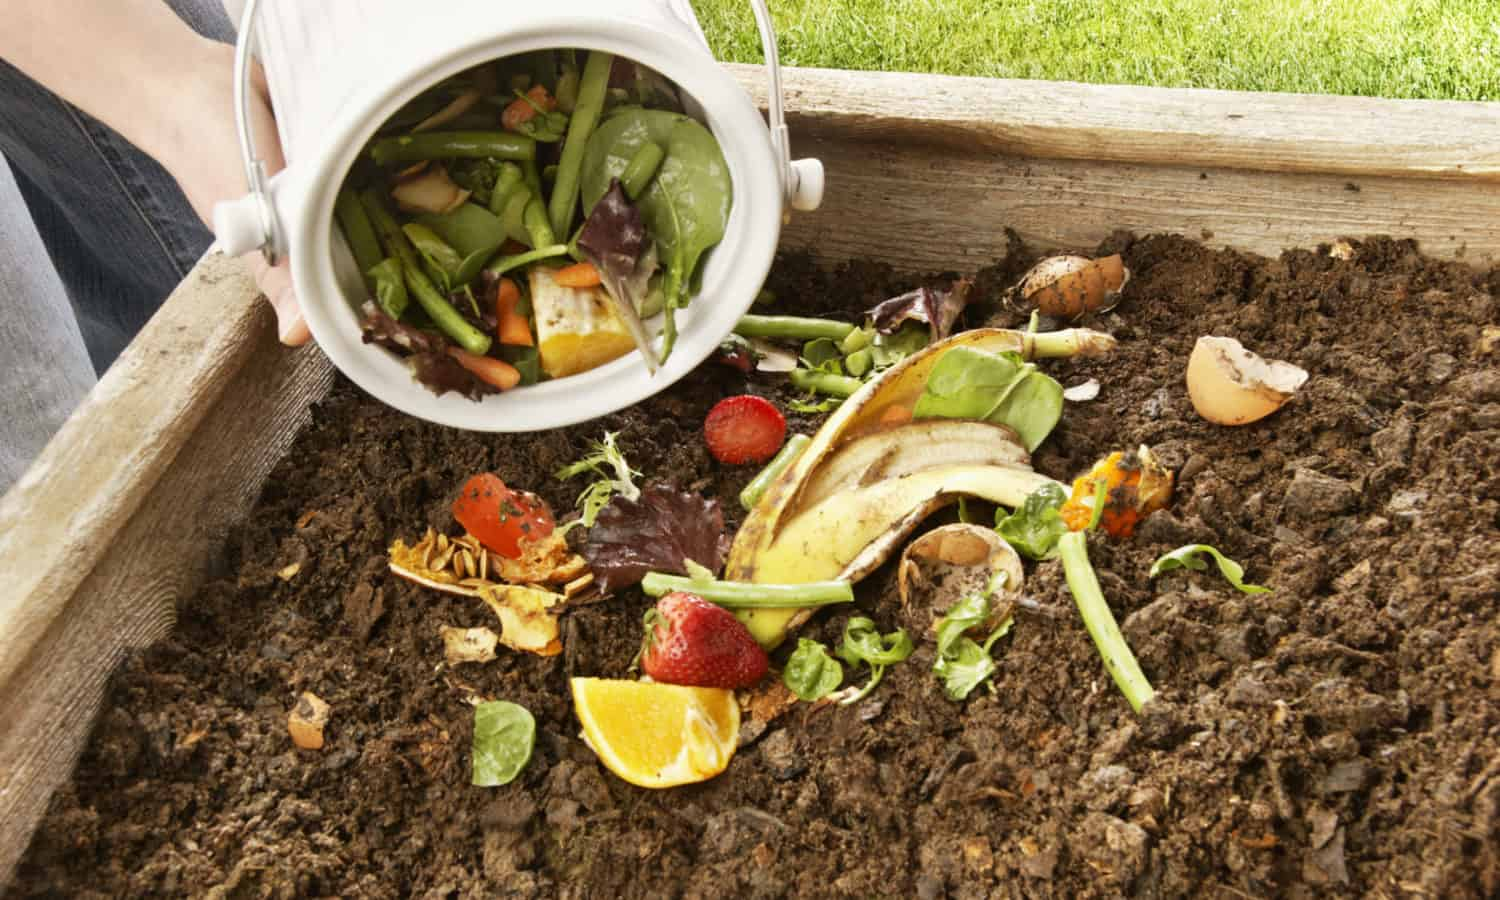 Emily Bachman on keeping food waste out of landfills as an easy way to reduce greenhouse gas emissions and bring life back to depleted soils.